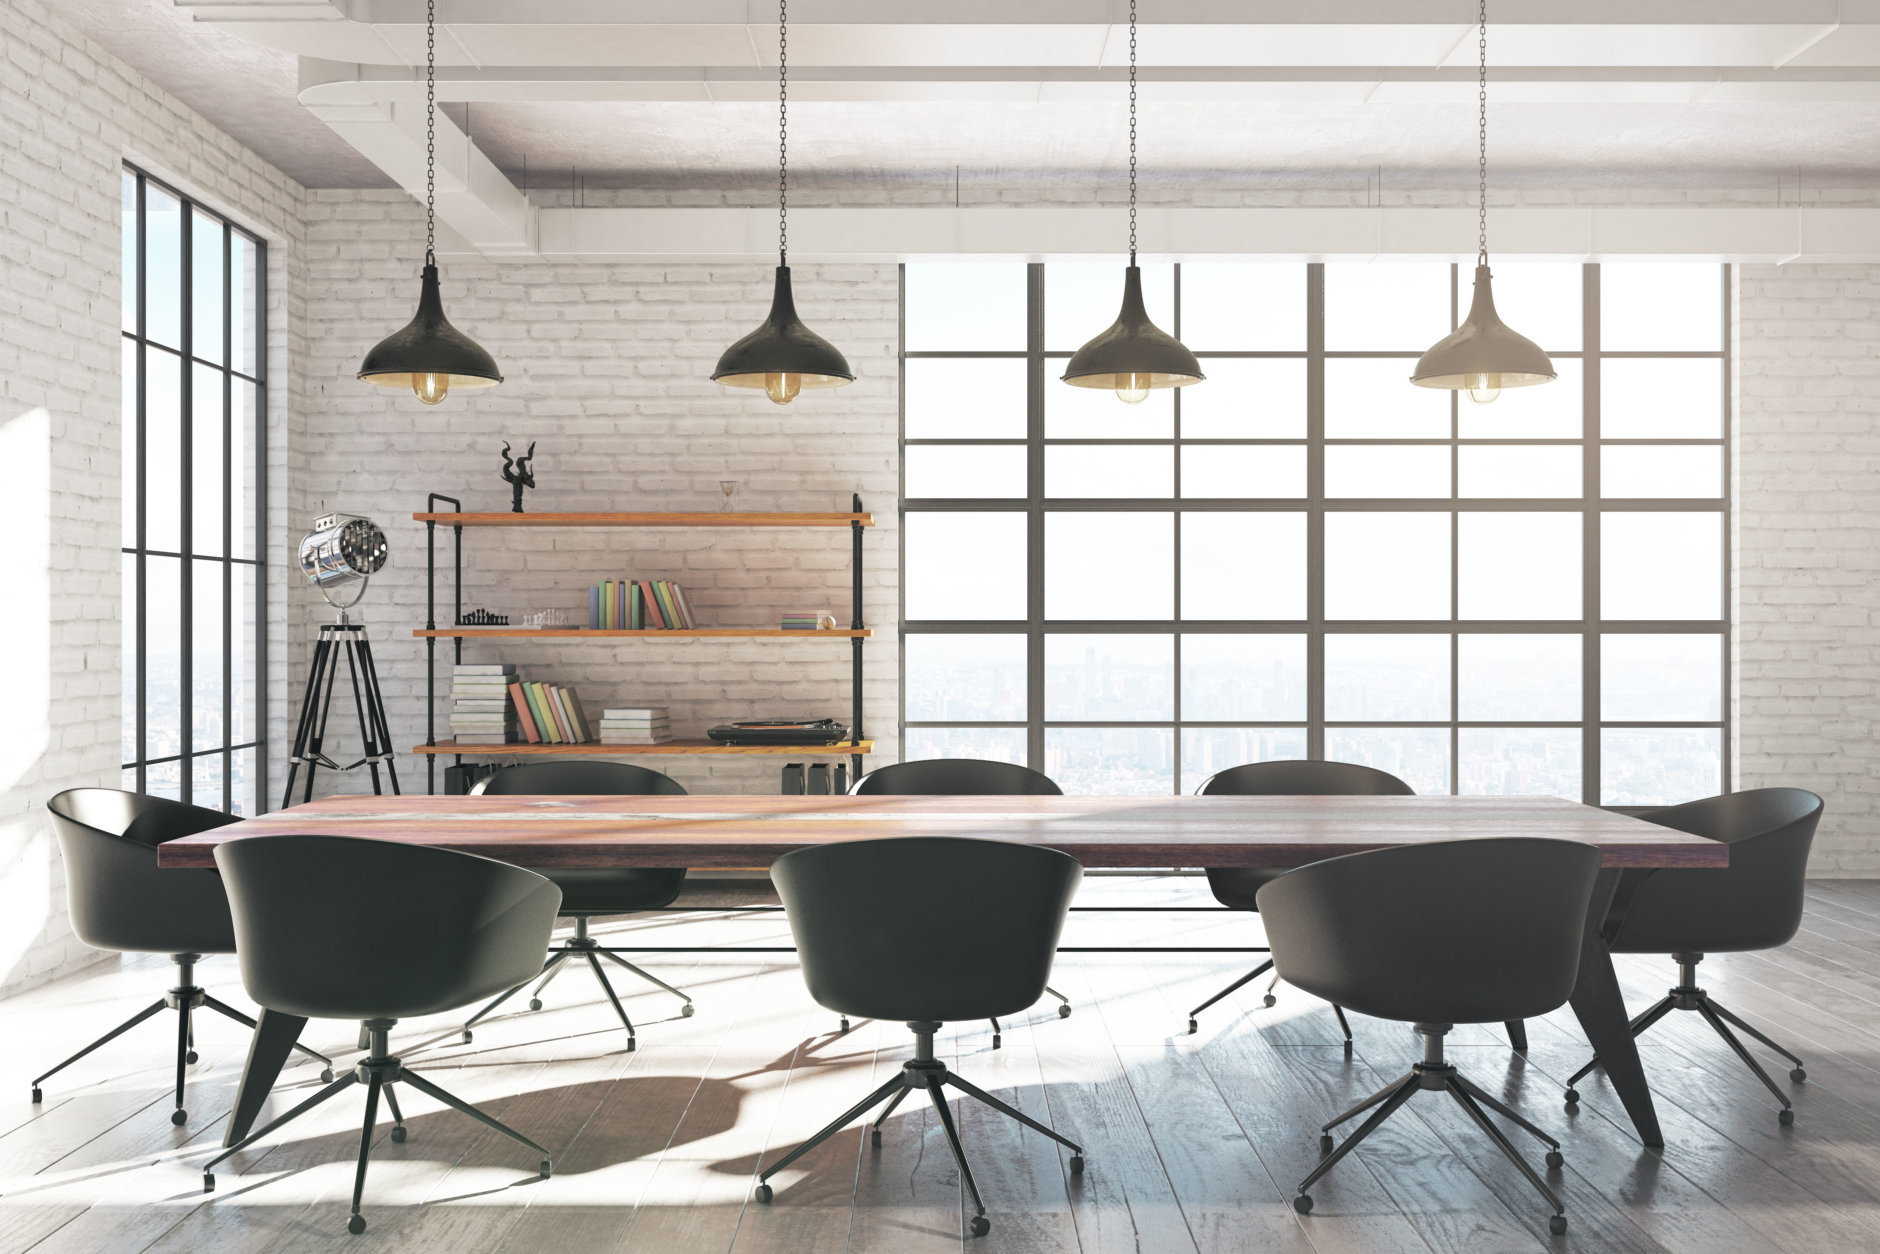 Modern white brick meeting room interior with equipment and sunlight. 3D Rendering